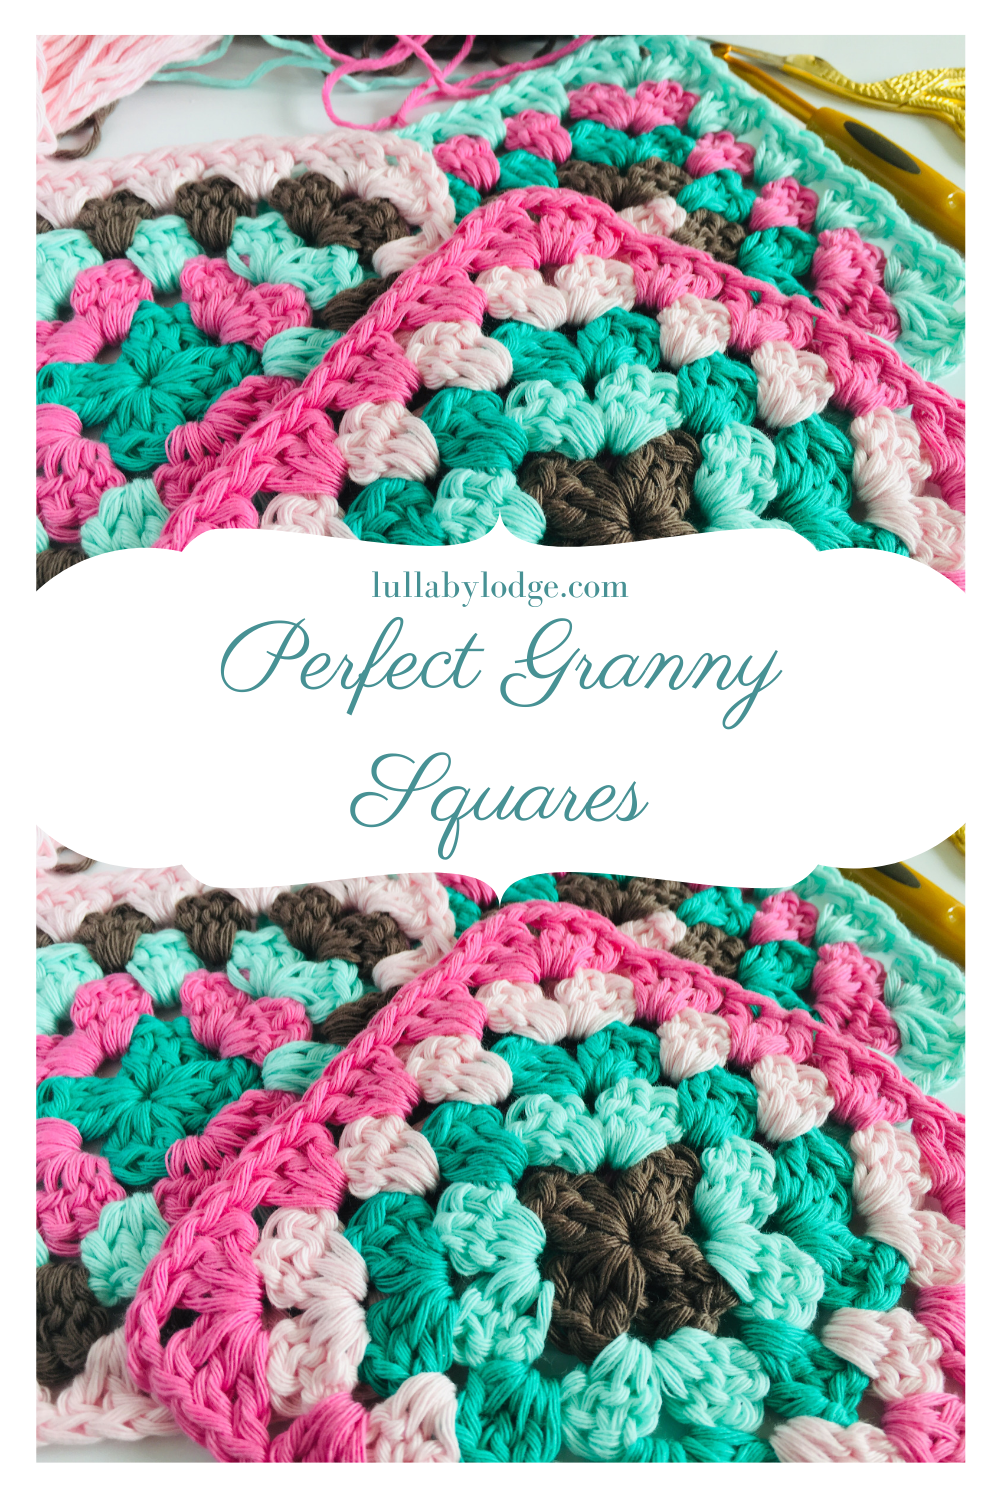 How To Make The Perfect Granny Square Without Twisty Corners Crochet Tutorial In 2020 Crochet Motif Patterns Crochet For Beginners Blanket Crochet Patterns